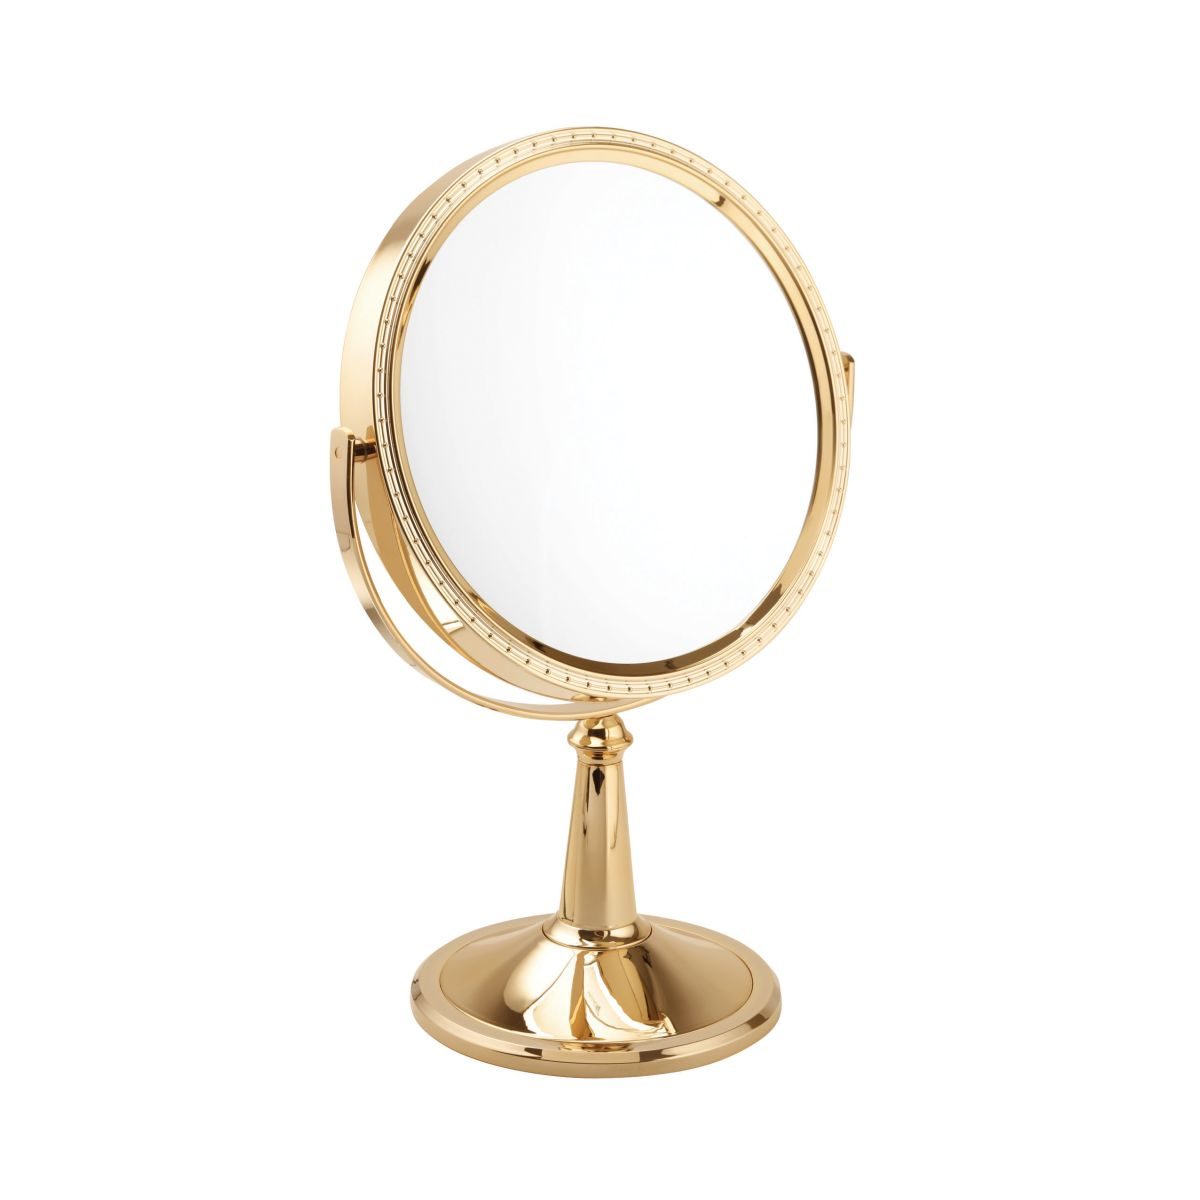 1009 20 gld 1 - Maddie' 10x Magnification Large Pedestal Mirror In Gold - 100920GLD